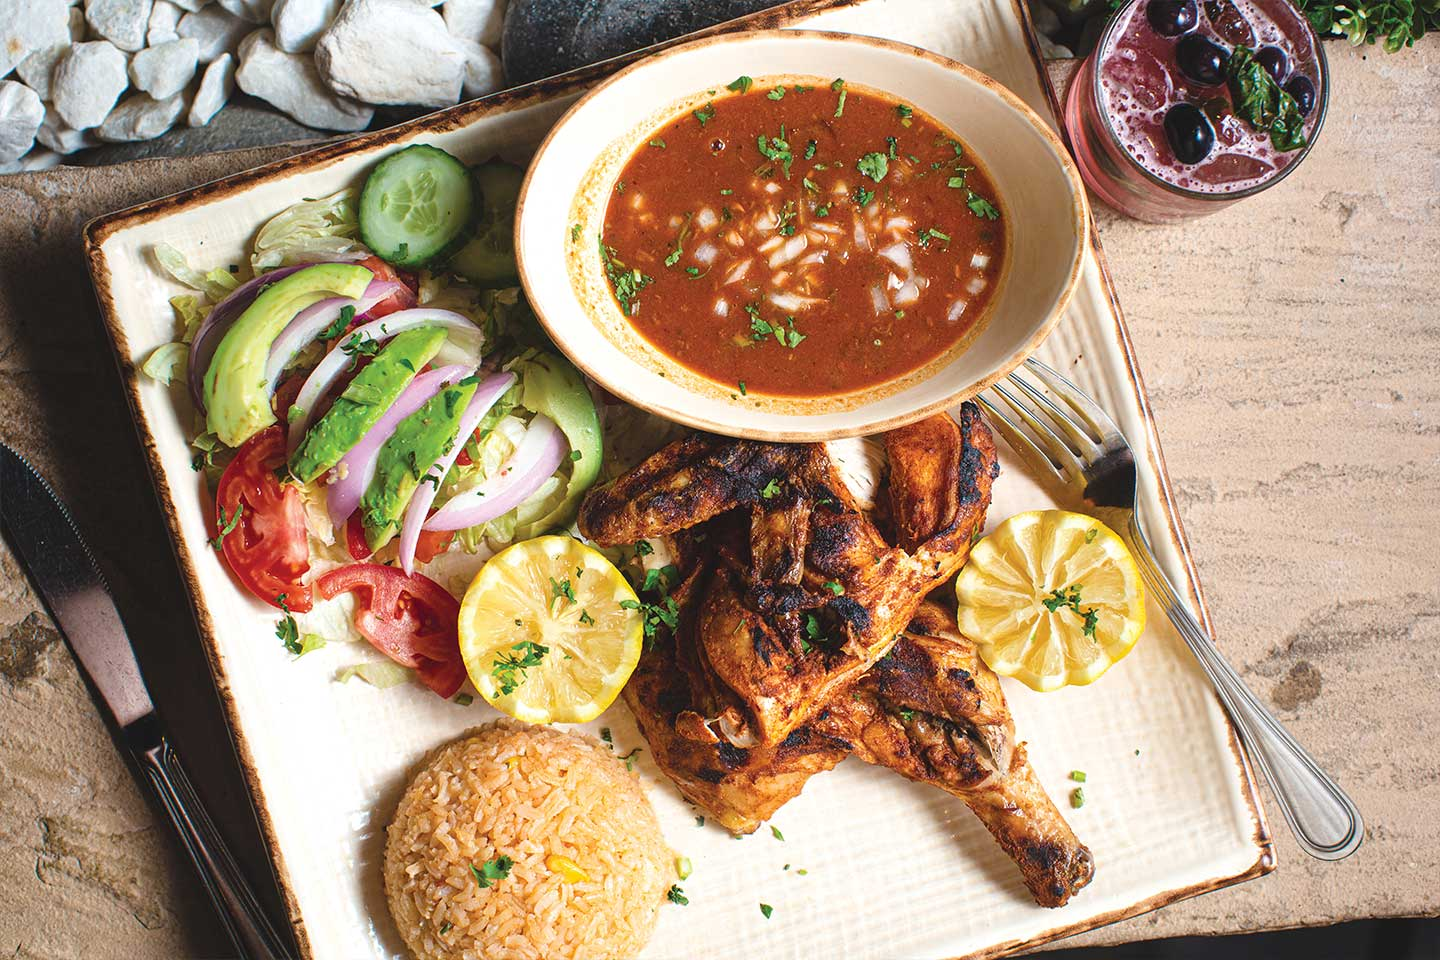 pollo asado or grilled chicken from mayan kitchen